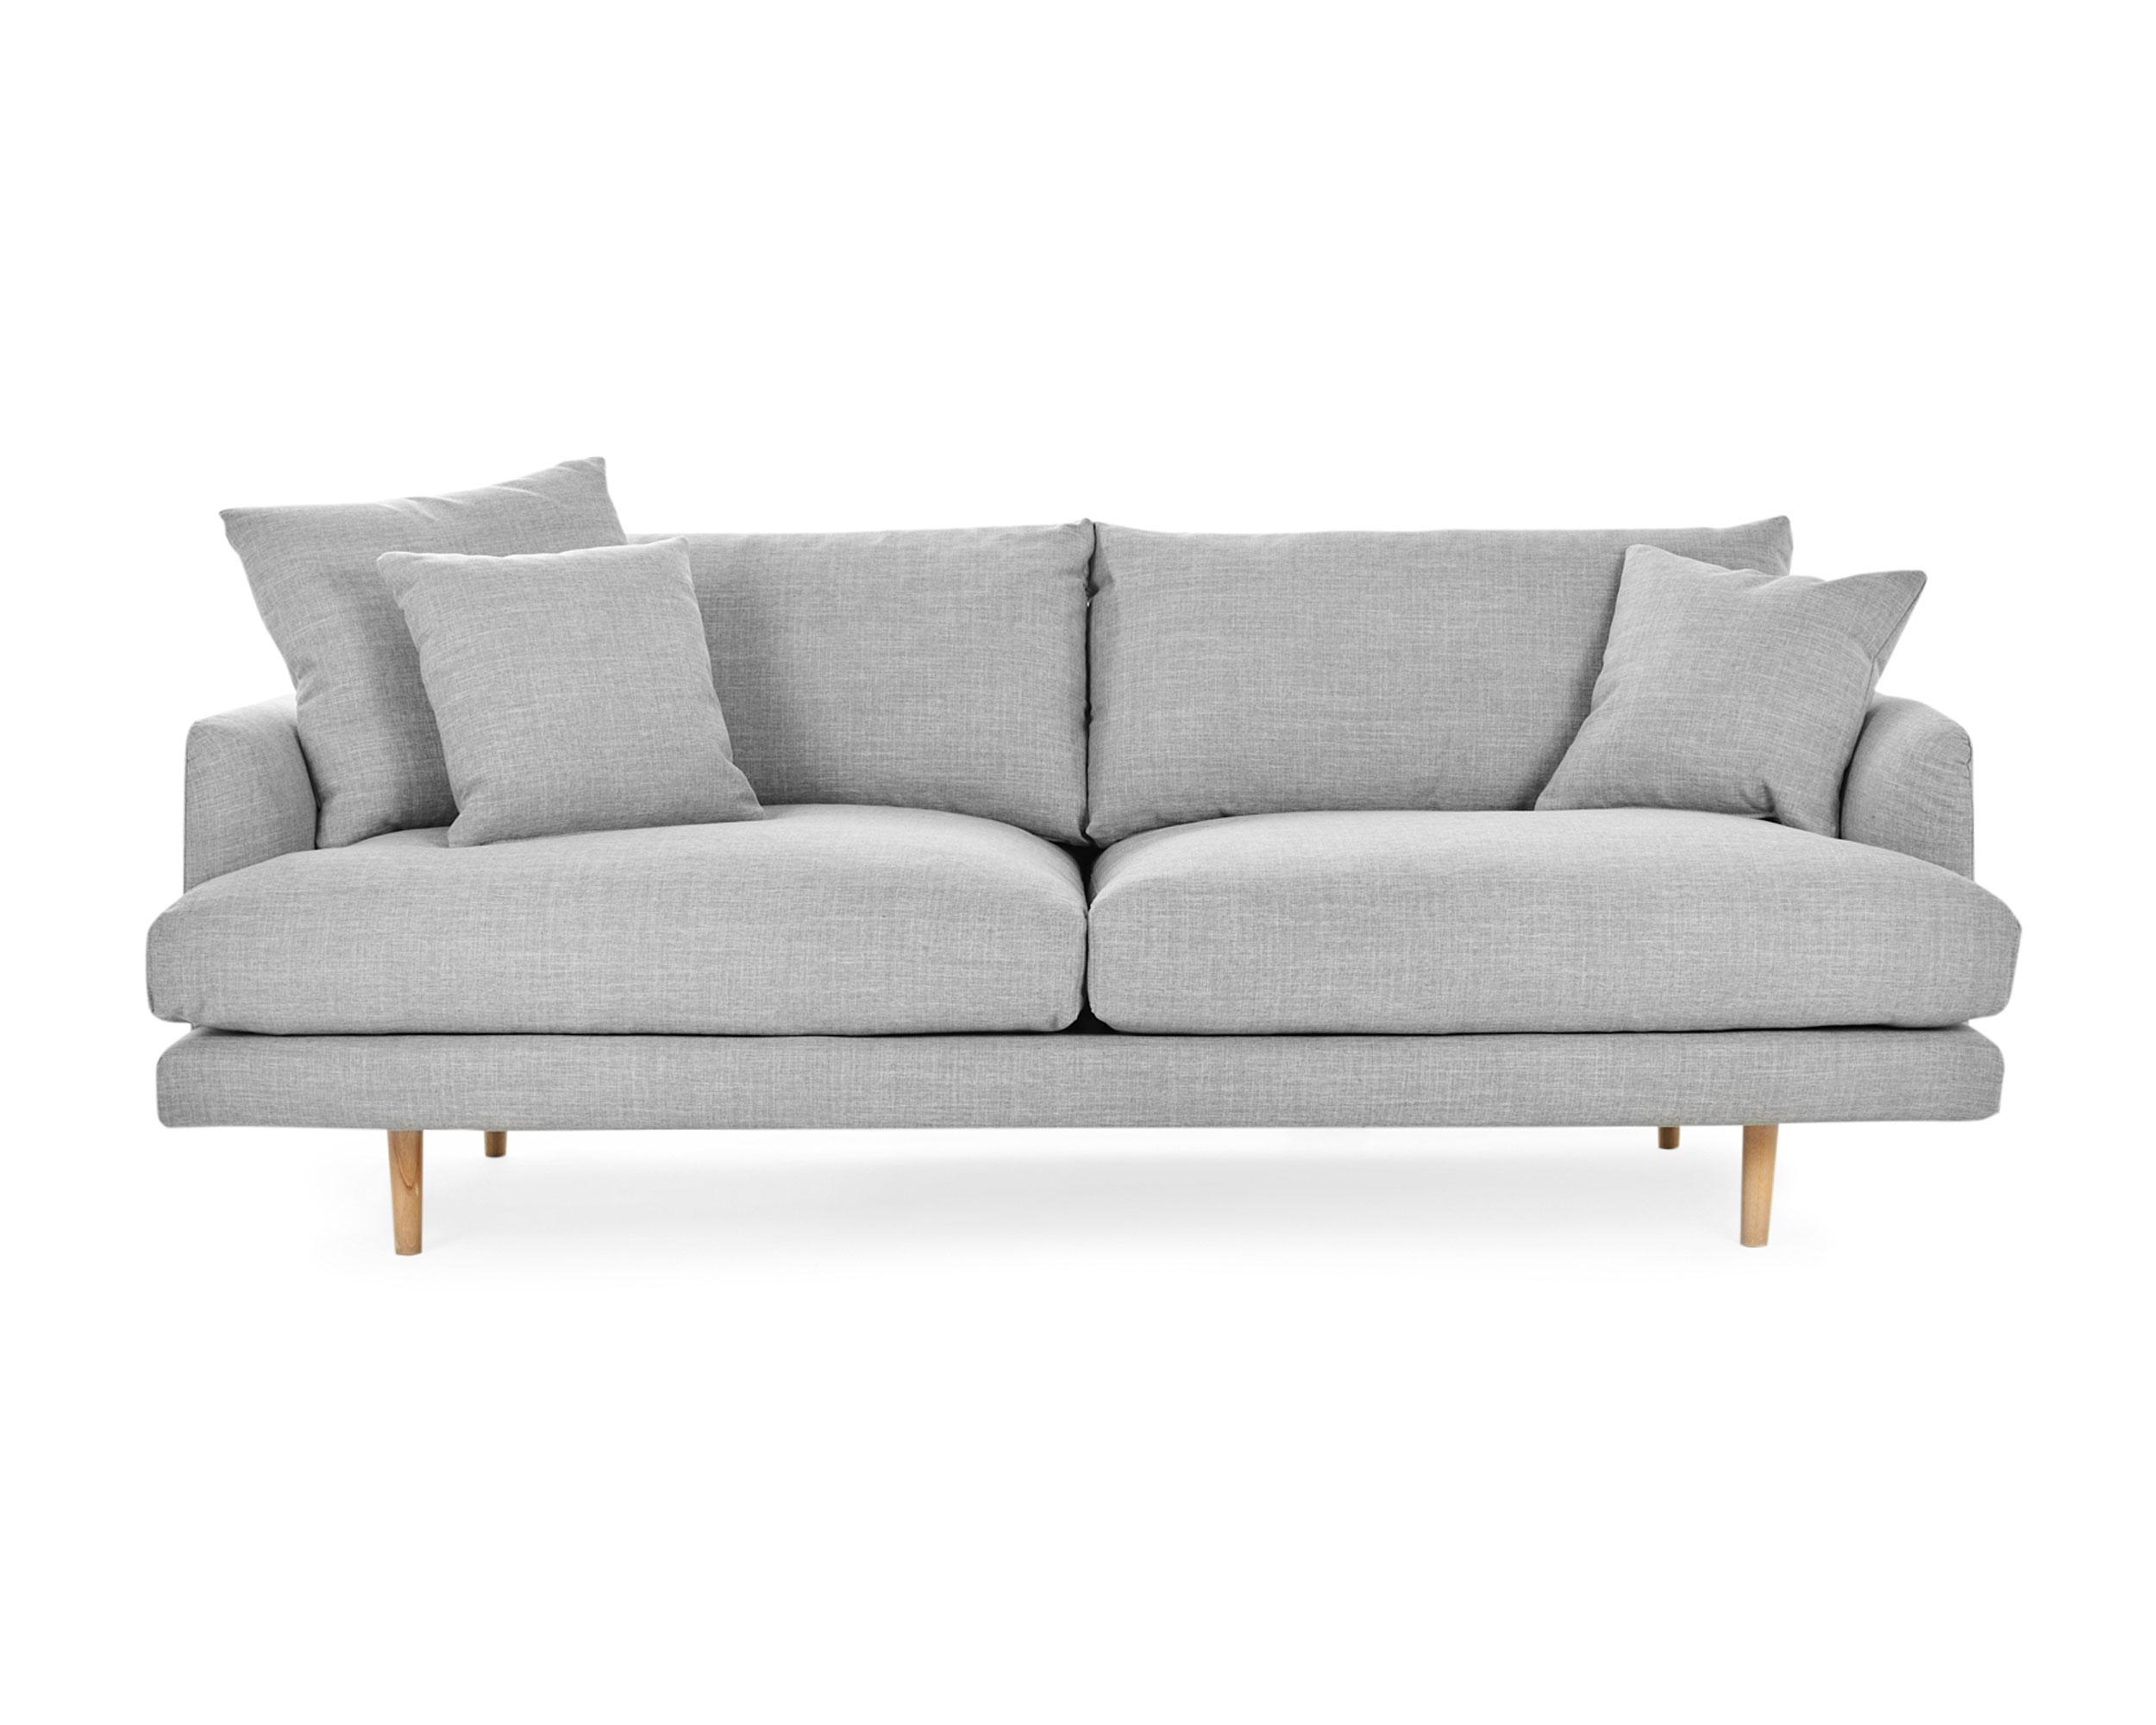 Hampton – 3 Seat Sofa | Loungelovers Within Modern 3 Seater Sofas (View 10 of 20)